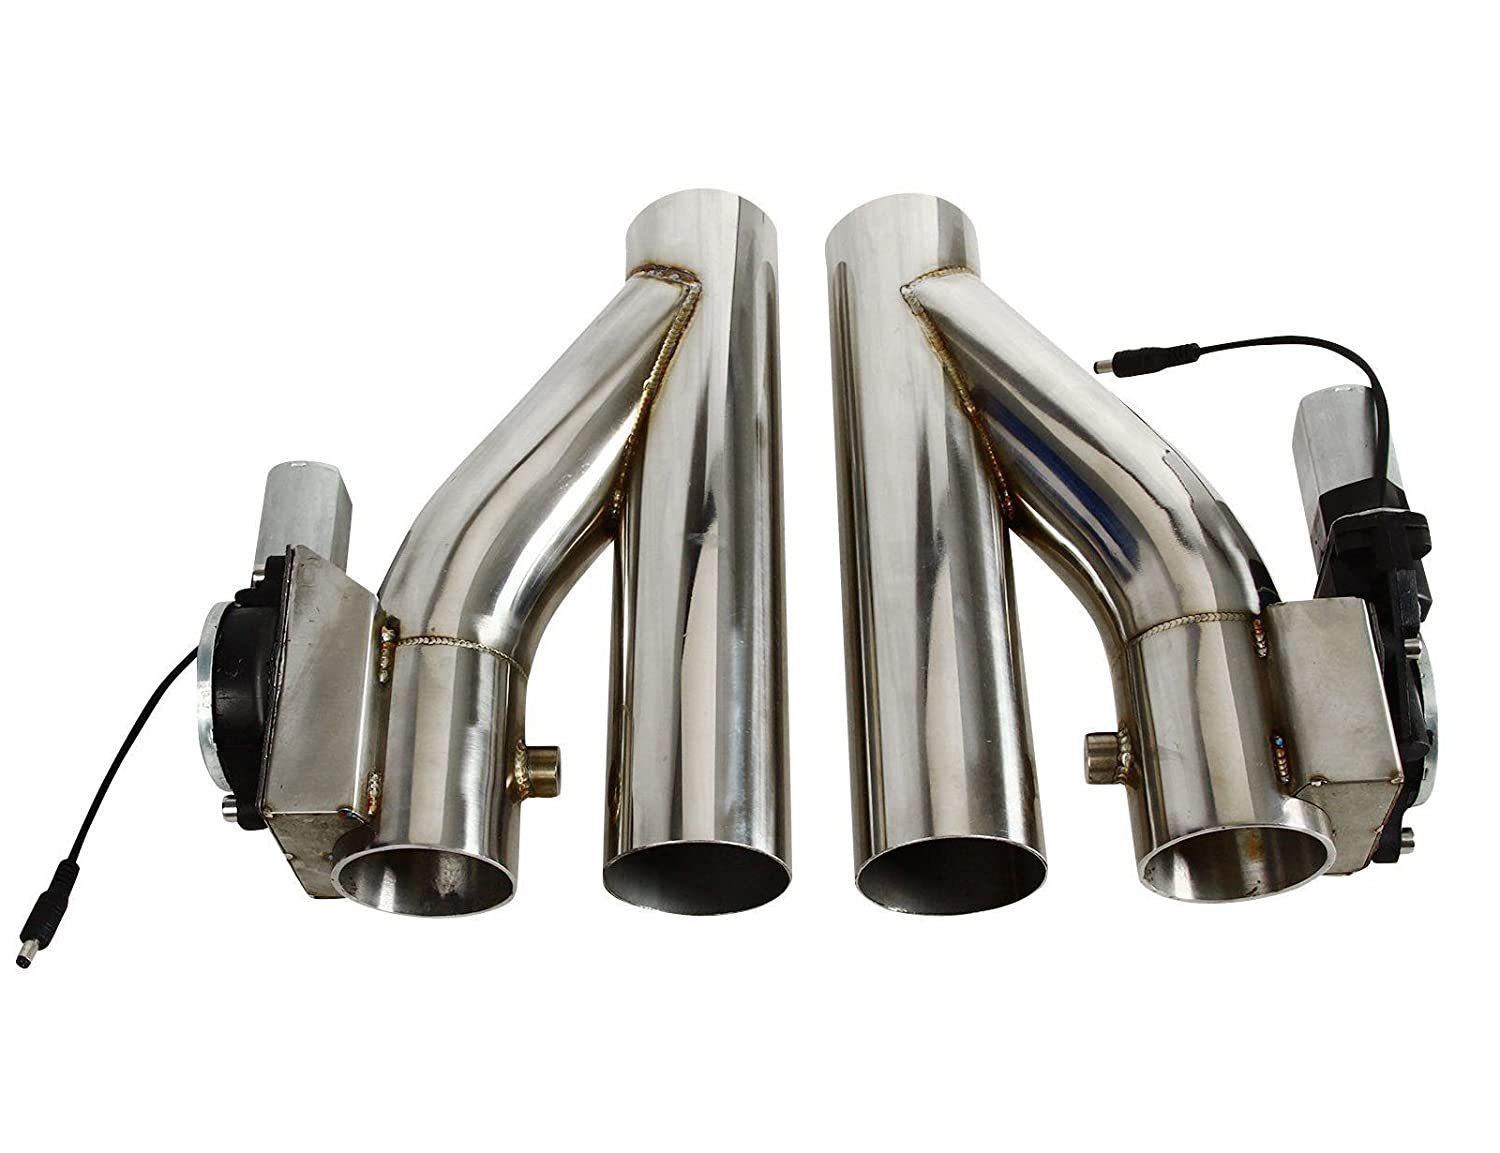 SUPERFASTRACING 2pcs 3 76mm Electric Exhaust Downpipe E-Cut Out Valve /& One Controller Remote Kit